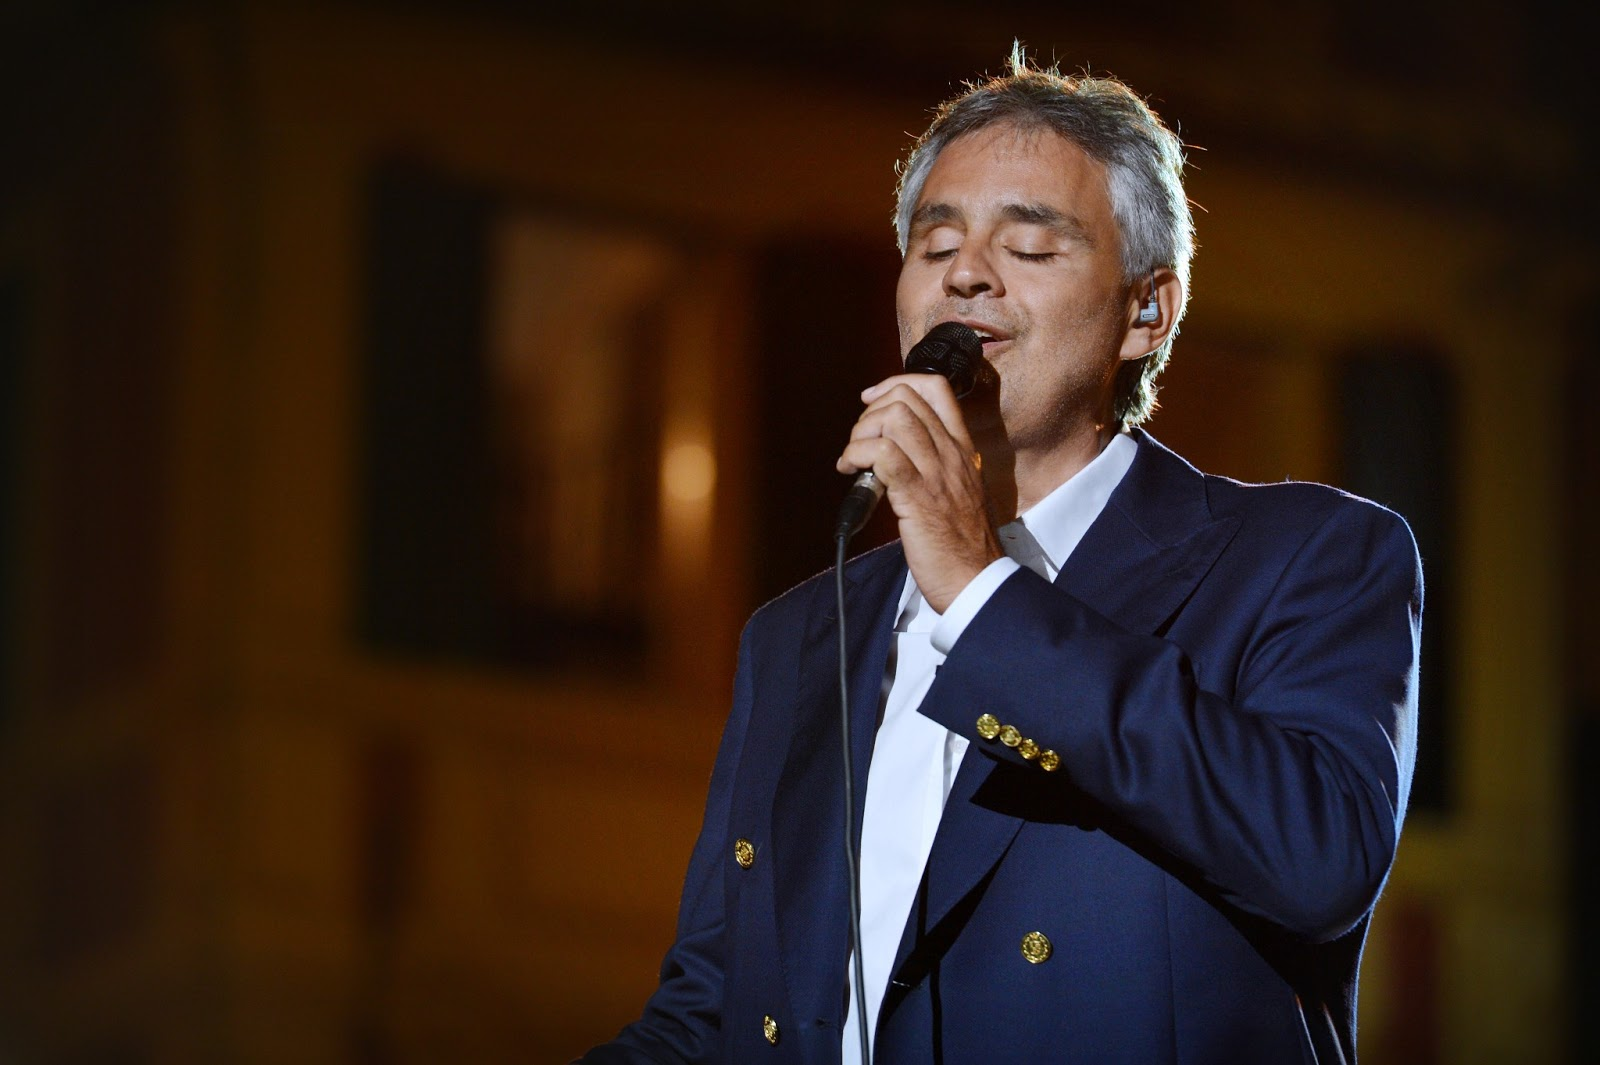 andrea bocelli love in portofino is exclusively yours at gsc cinemas green tea movie. Black Bedroom Furniture Sets. Home Design Ideas